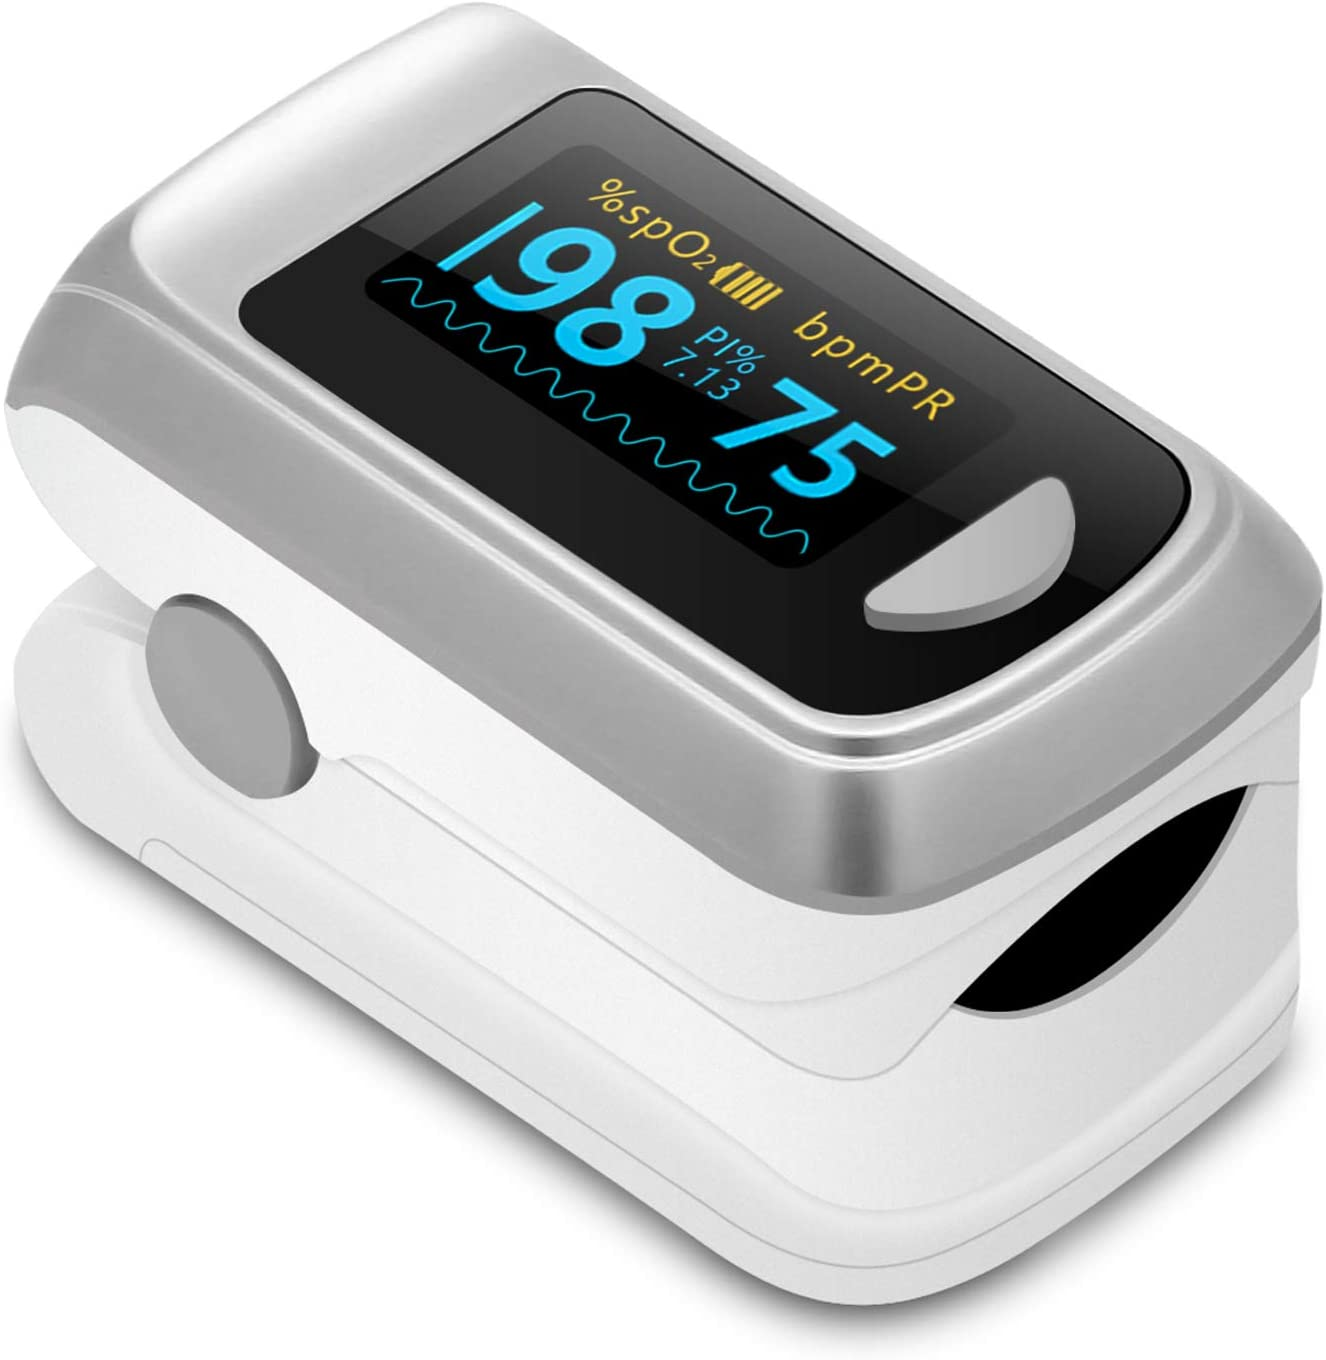 Pulse Oximeter Blood Oxygen Saturation Monitor, Digital Fingertip SpO2 Oxygen Meter Heart Rate Monitor OLED Digital Display with 2 AAA Batteries…